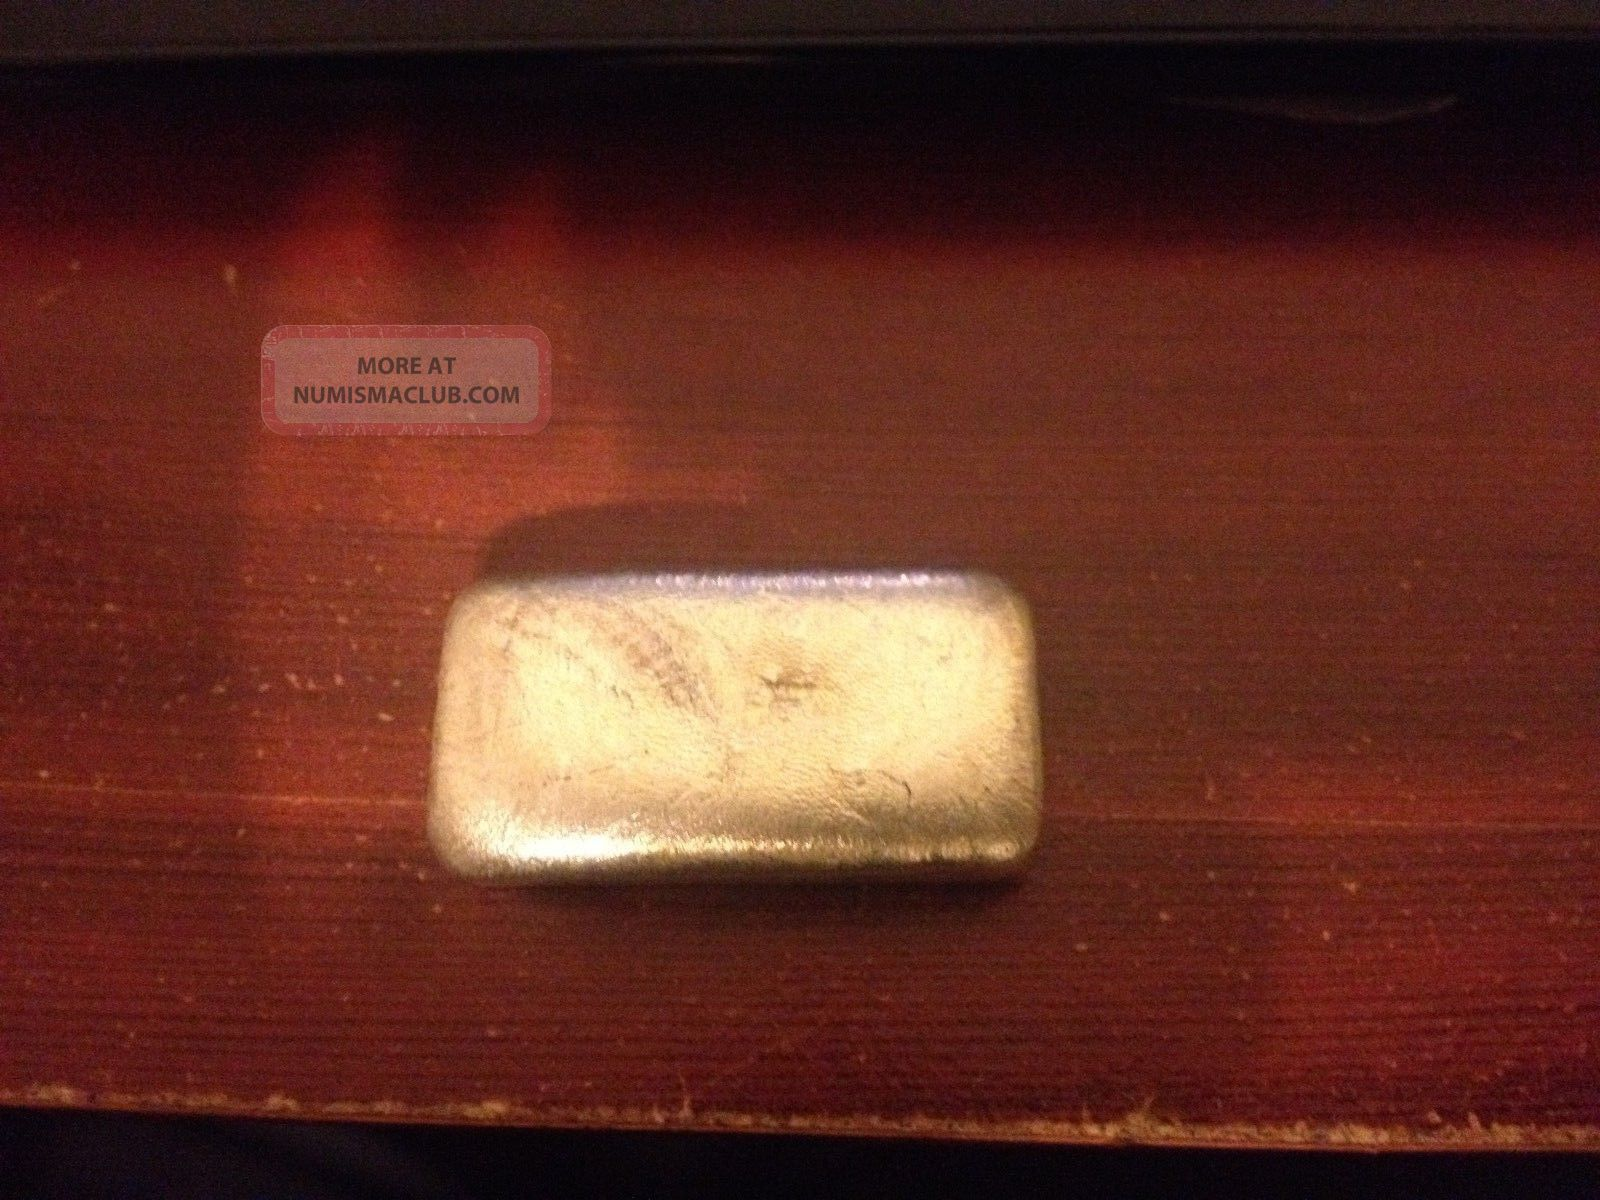 Palladium Silver Bar Loaf 2oz Sterling Bullion 4 Palladium 96 Silver Bullion photo